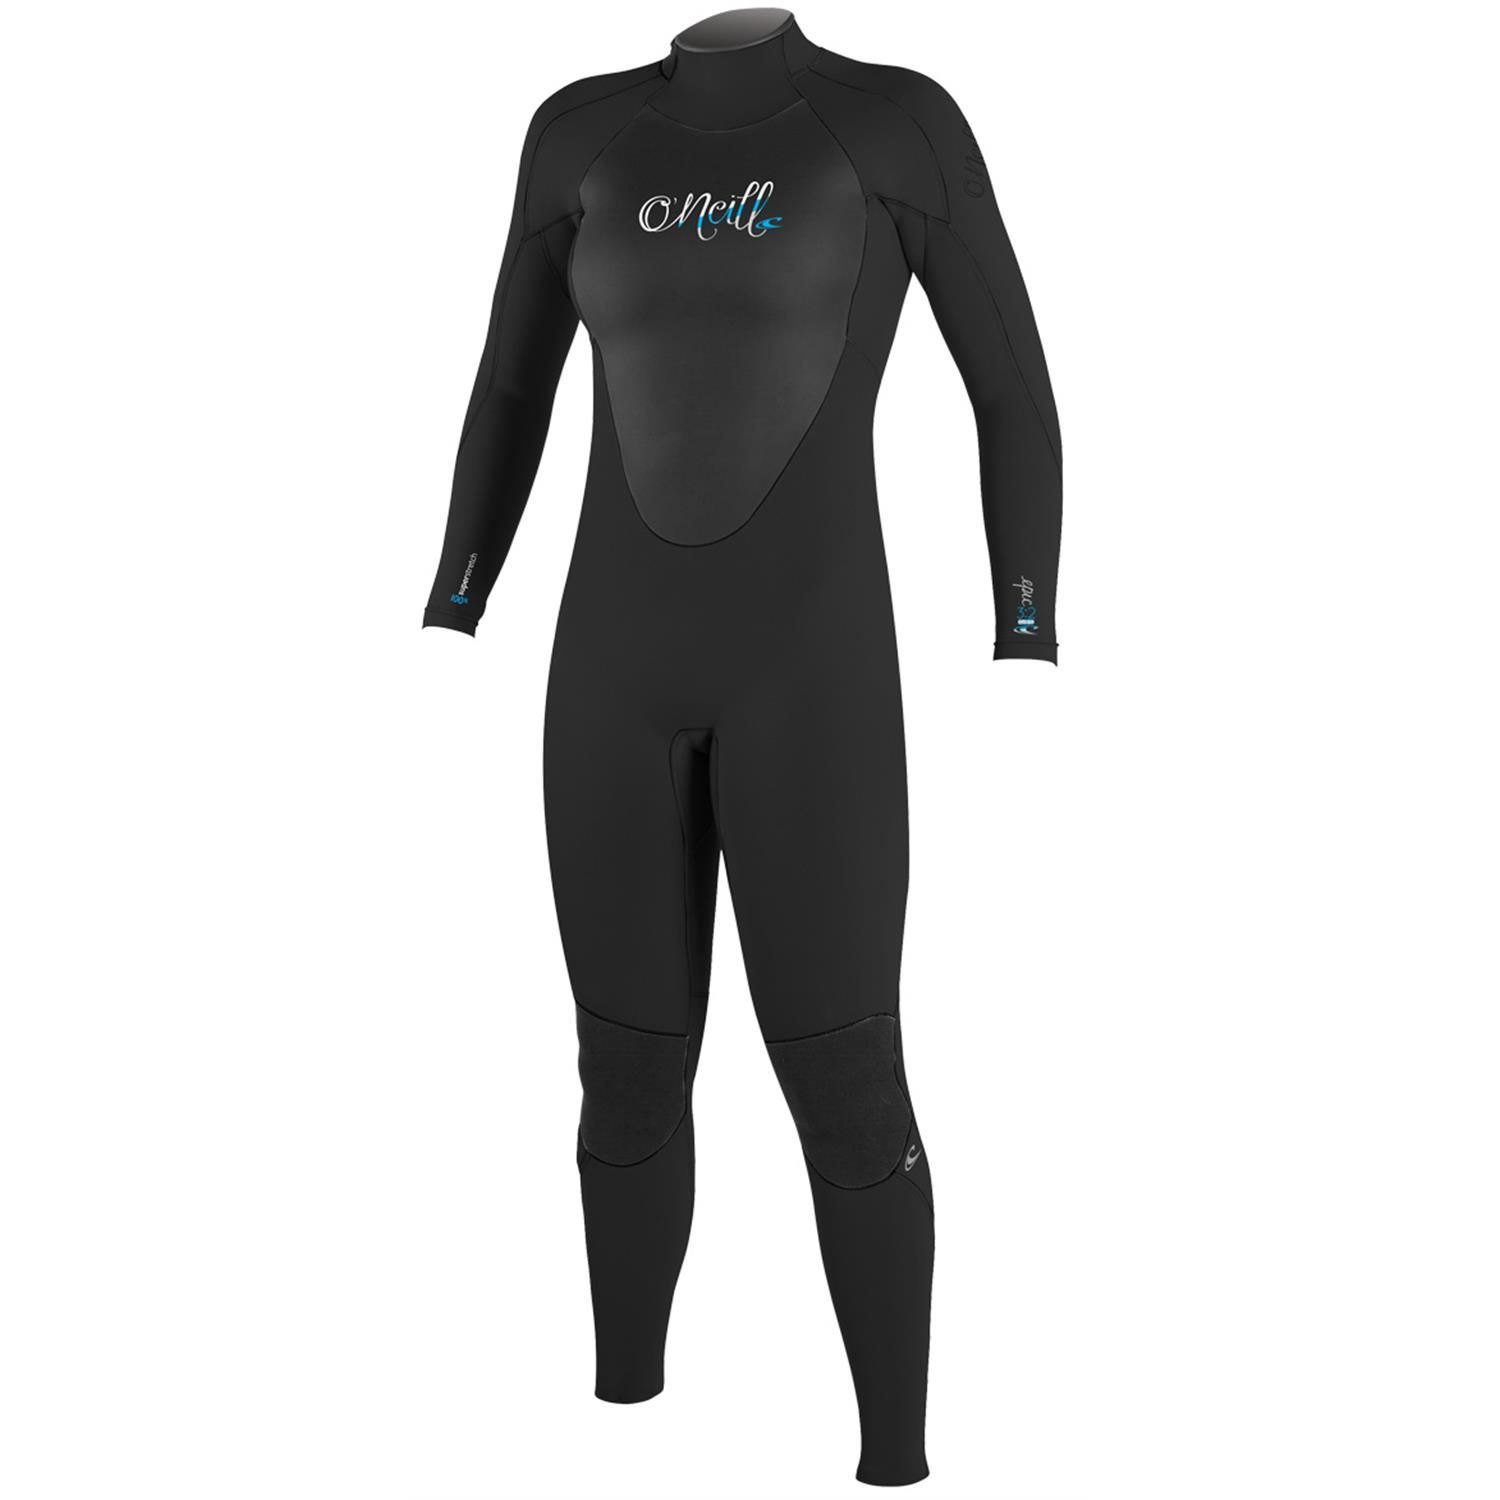 O Neill 4 3 Epic Back Zip Wetsuit Women S In 2020 Womens Wetsuit Suits For Women Wetsuit